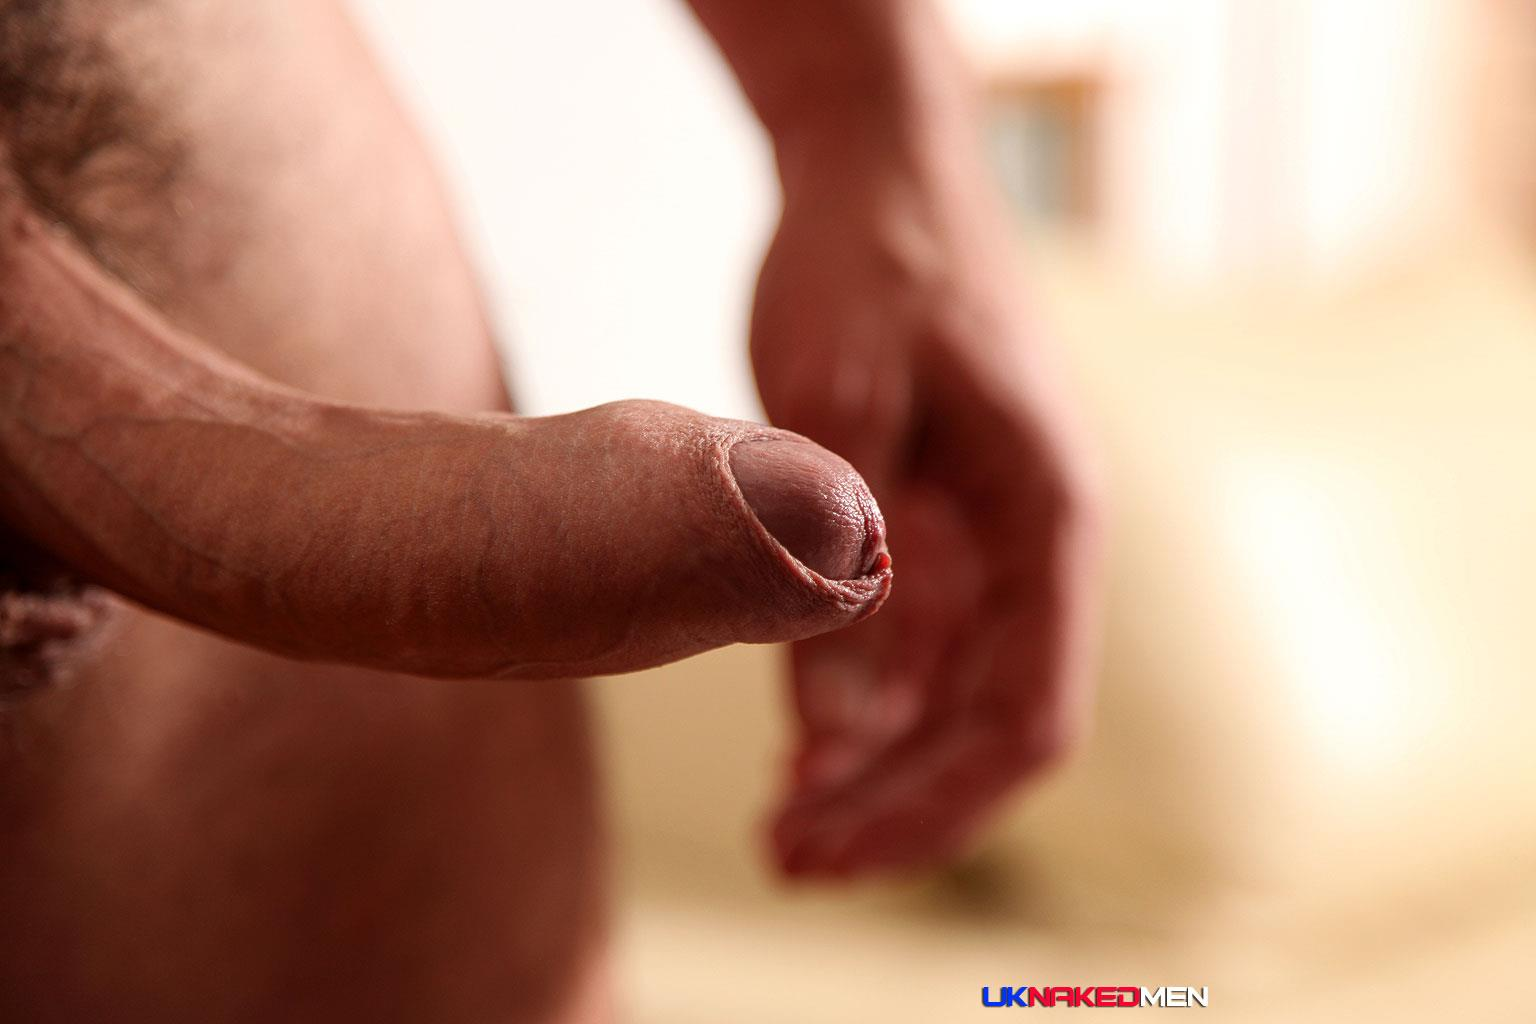 UK-Nakedmen-Sandro-Sanchez-Spanish-Guy-Jerking-Off-His-Huge-Uncut-Cock-Amateur-Gay-Porn-08 Spanish Amateur Sandro Sanchez Jerking His Big Thick Uncut Cock